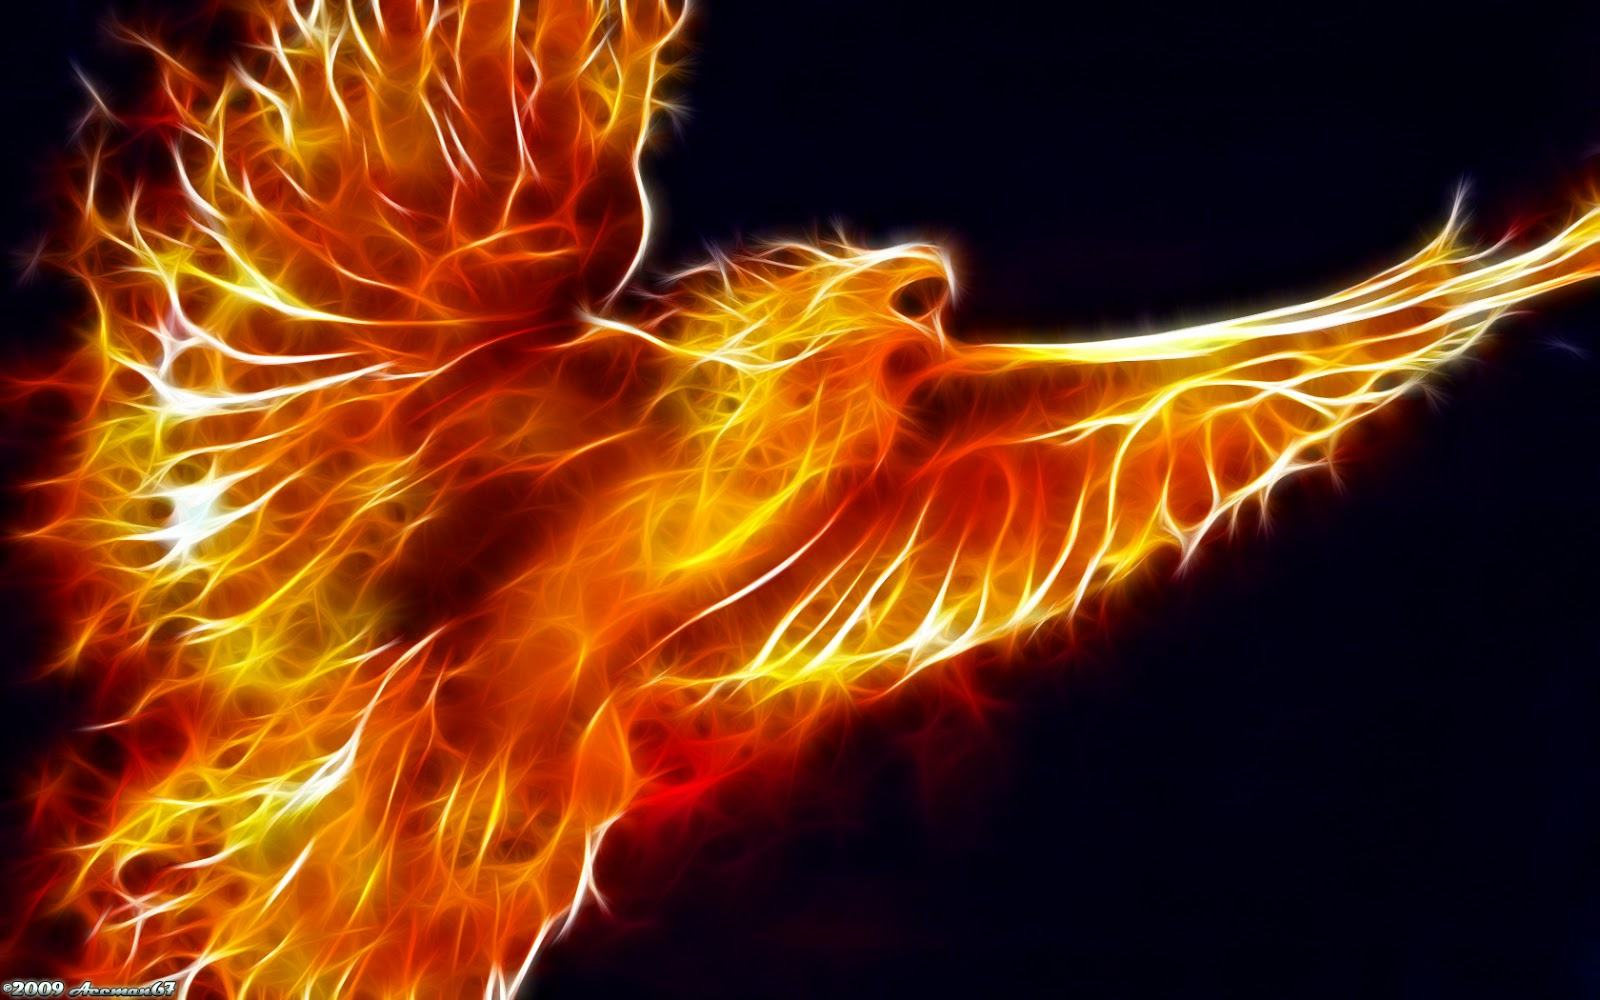 hd wallpapers desktop fire - photo #18